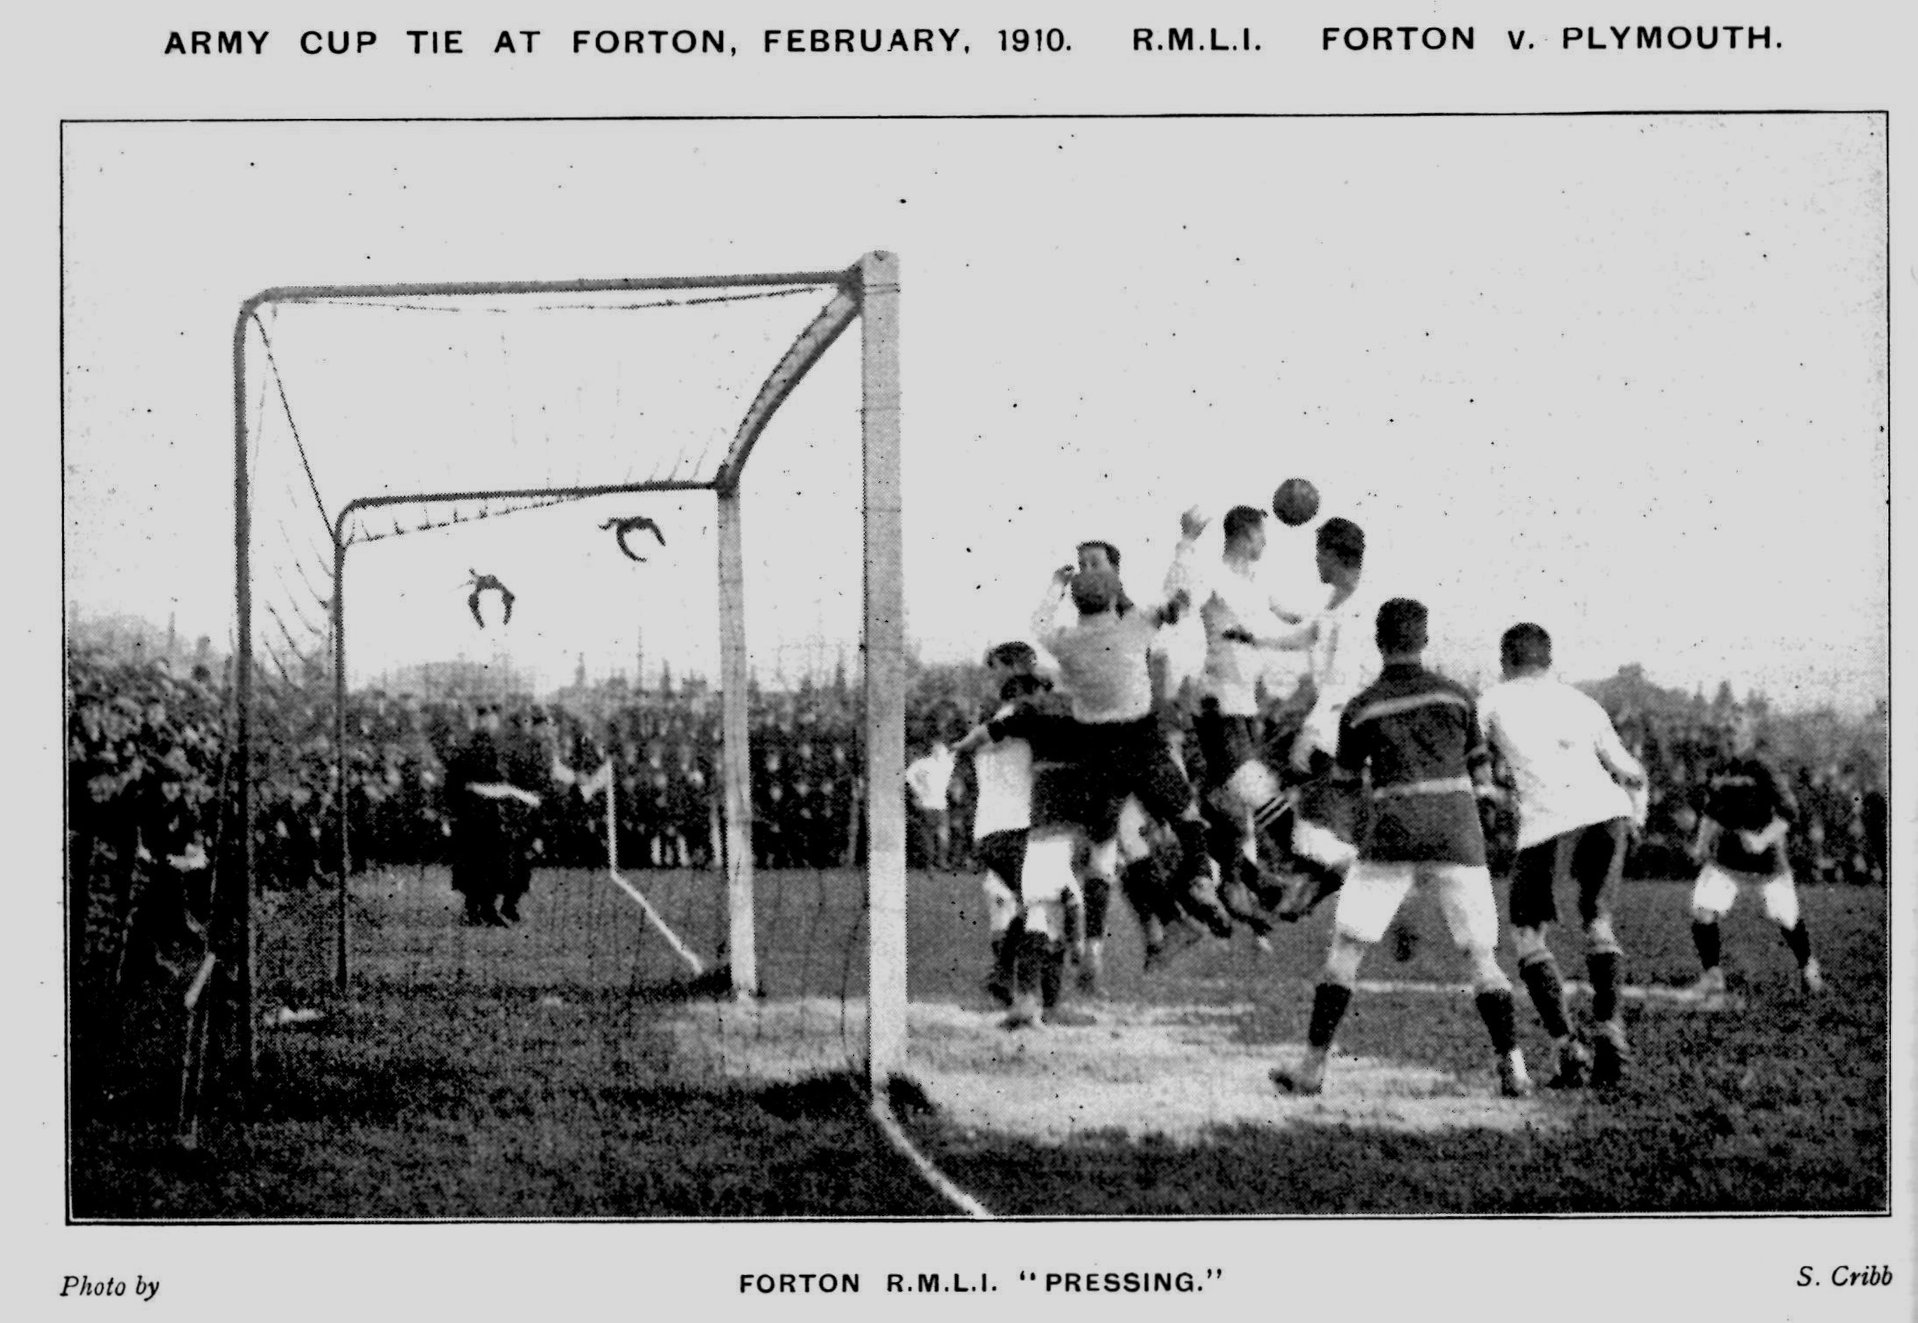 1910 Army Cup 5th round action